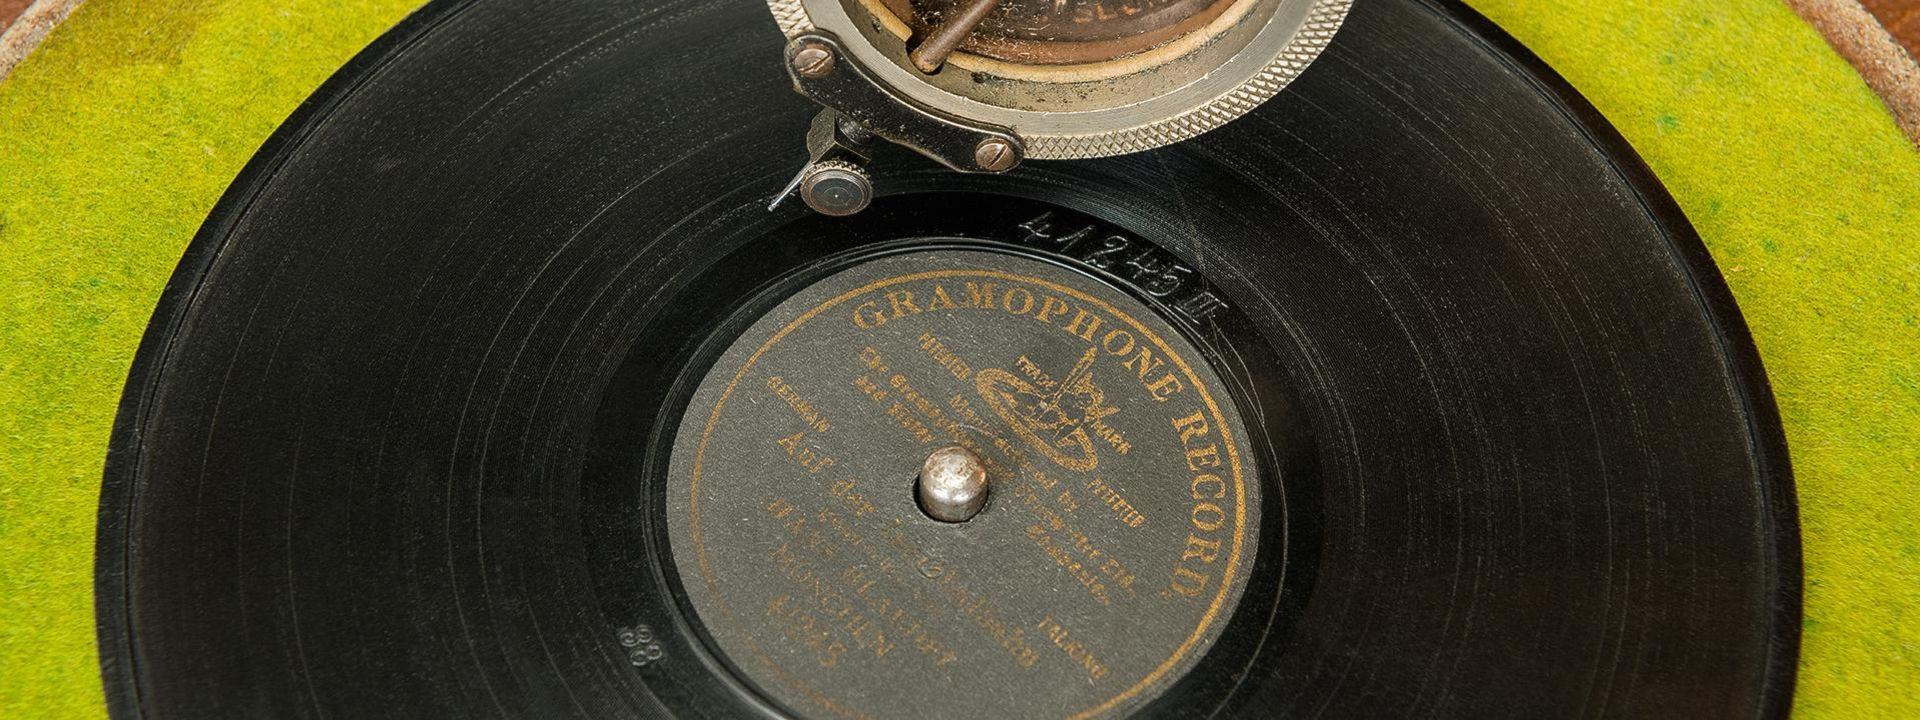 A record lies on green felt. A gramophone arm with a decorated sound box is positioned above it.